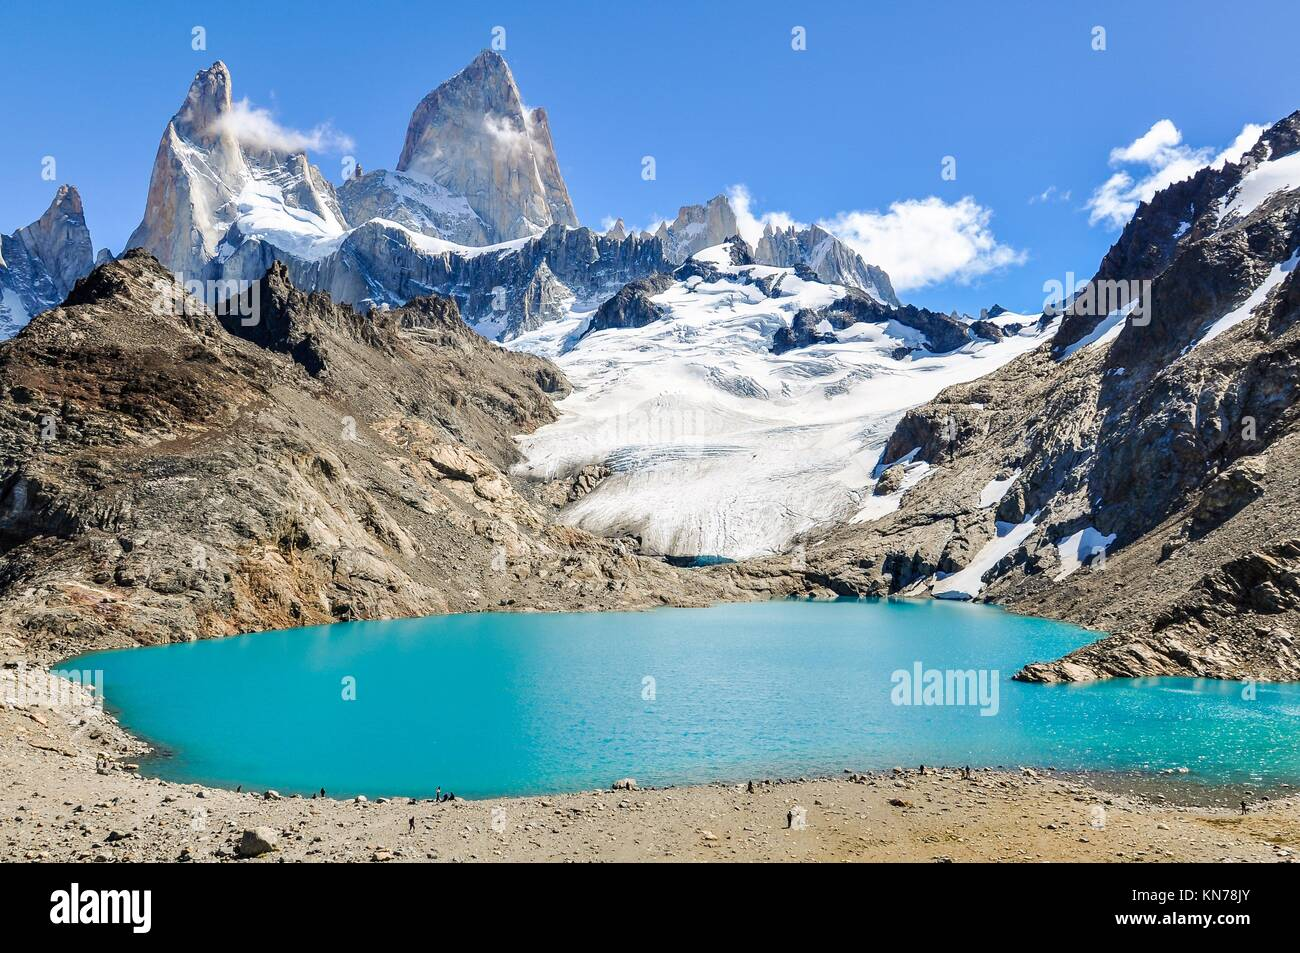 At the lagoon, Fitz Roy Walk, El Chalten, Patagonia, Argentina. - Stock Image